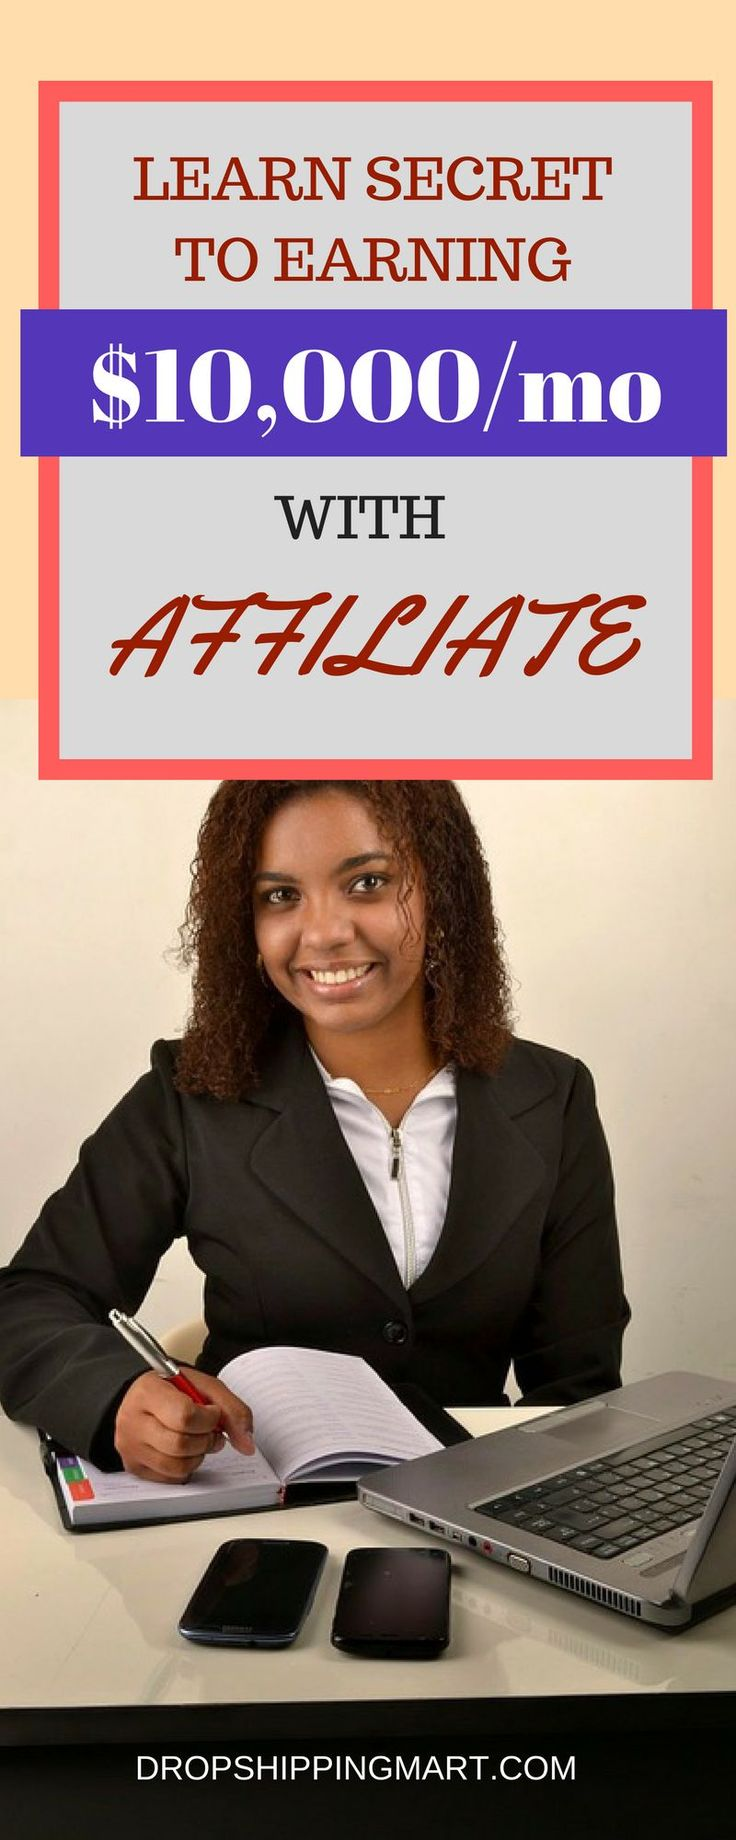 Online jobs that are related with affiliate marketing. Looking for work from home jobs? Online jobs are a great way to earn money without leaving your home. Check this great post about affiliate marketing for beginners.